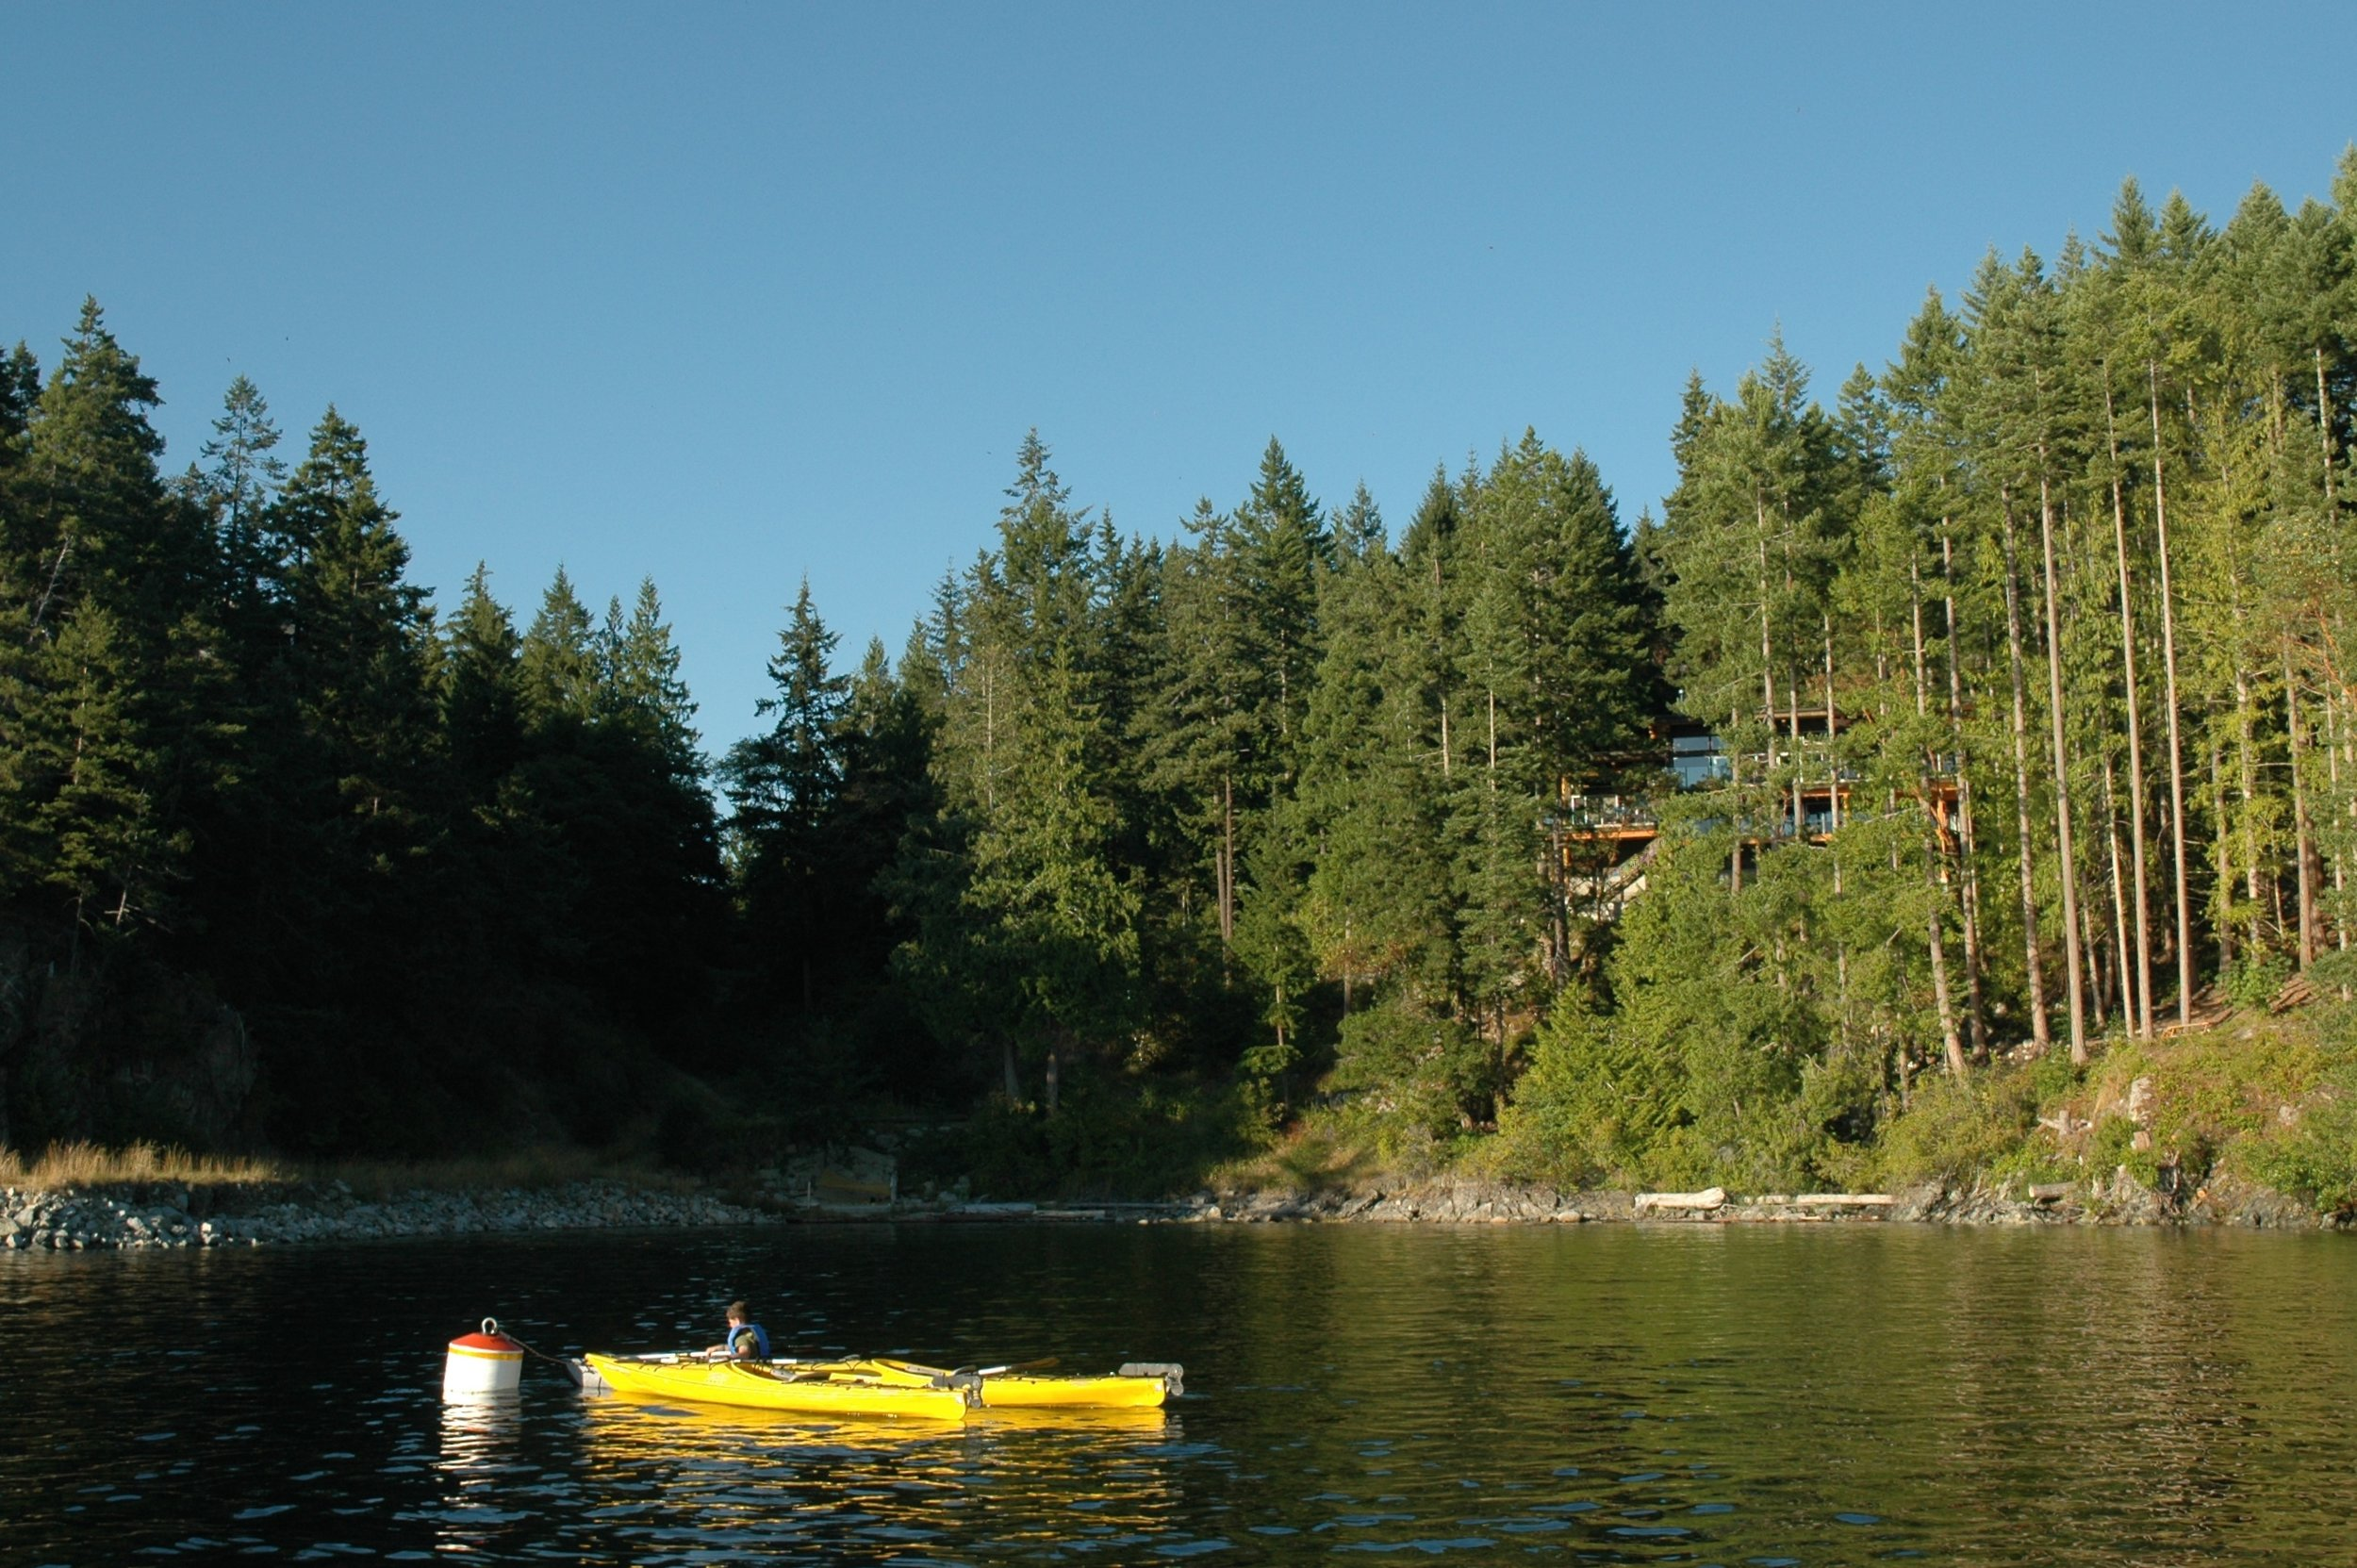 Mooring buoy with house in the trees above